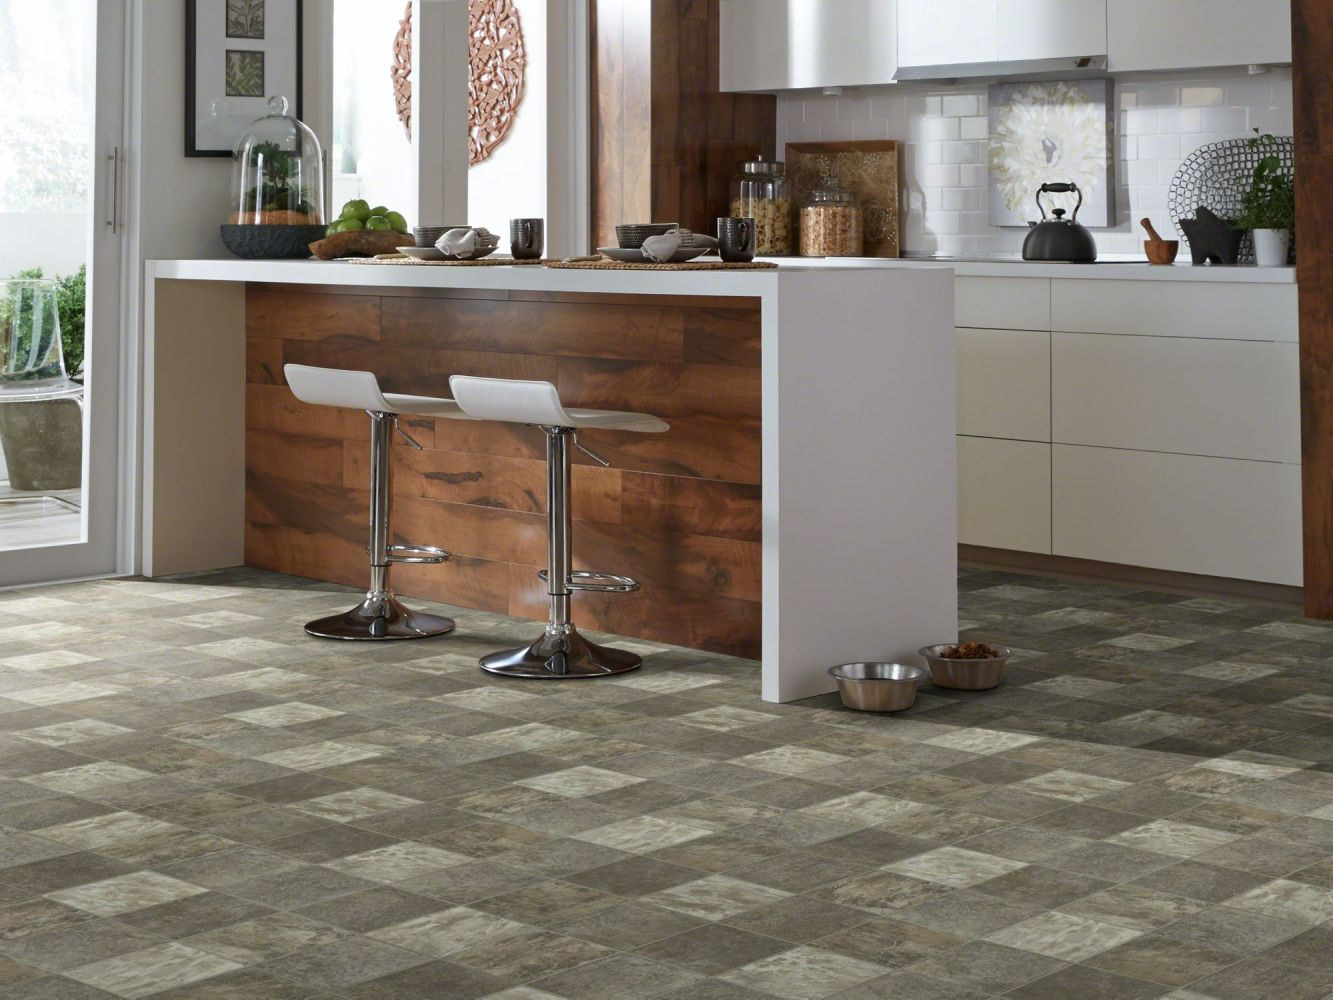 Shaw Floors Resilient Property Solutions Compact 12 Lassen 00528_VG061